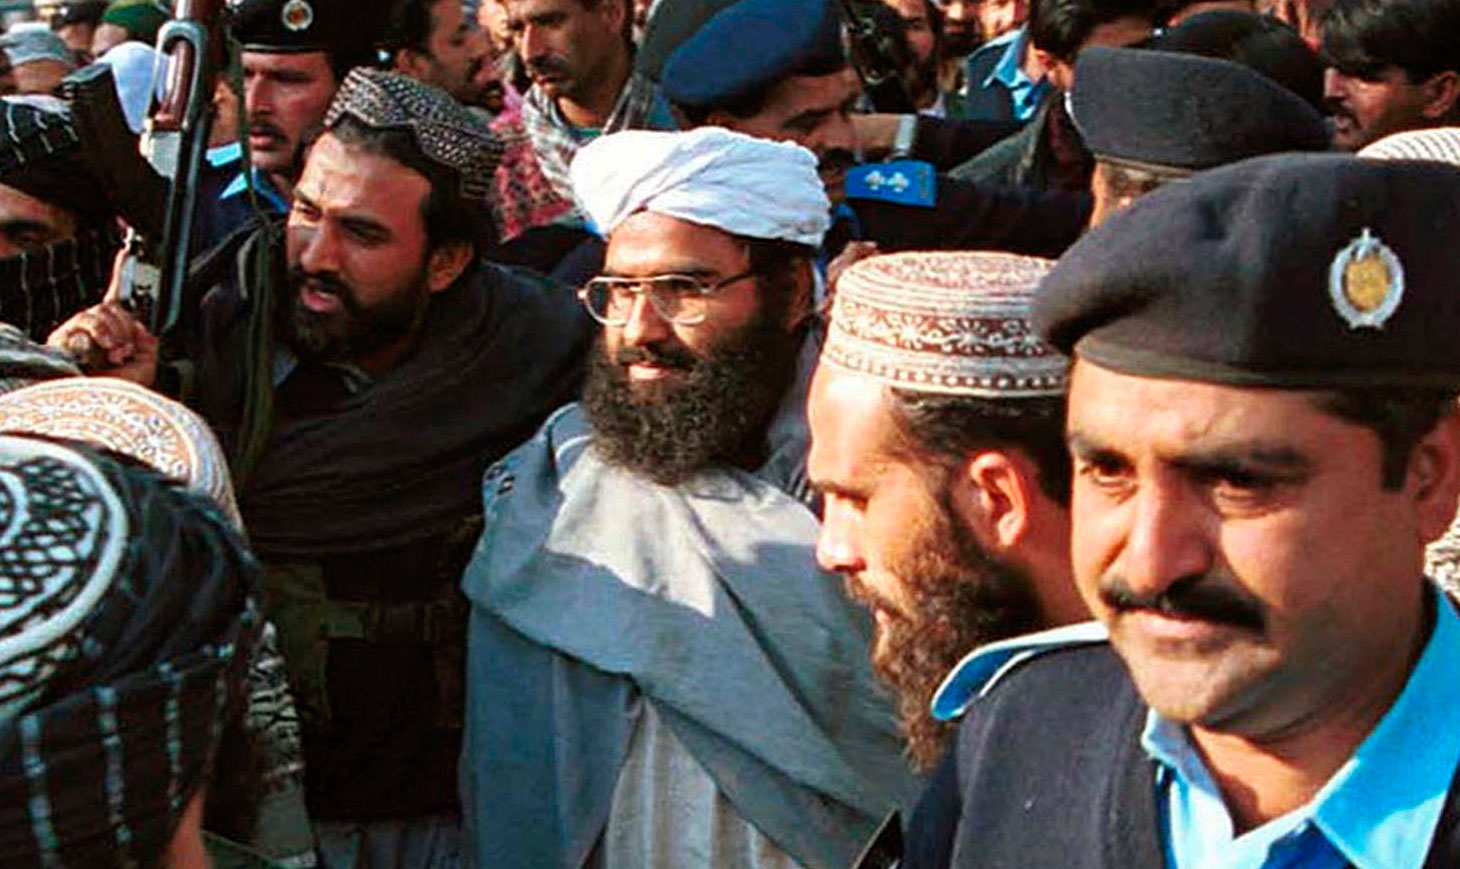 Masood Azhar (centre) in Islamabad, Pakistan, on January 27, 2000. Pakistan has already announced a freeze on Azhar's assets, but such interventions may not be enough.